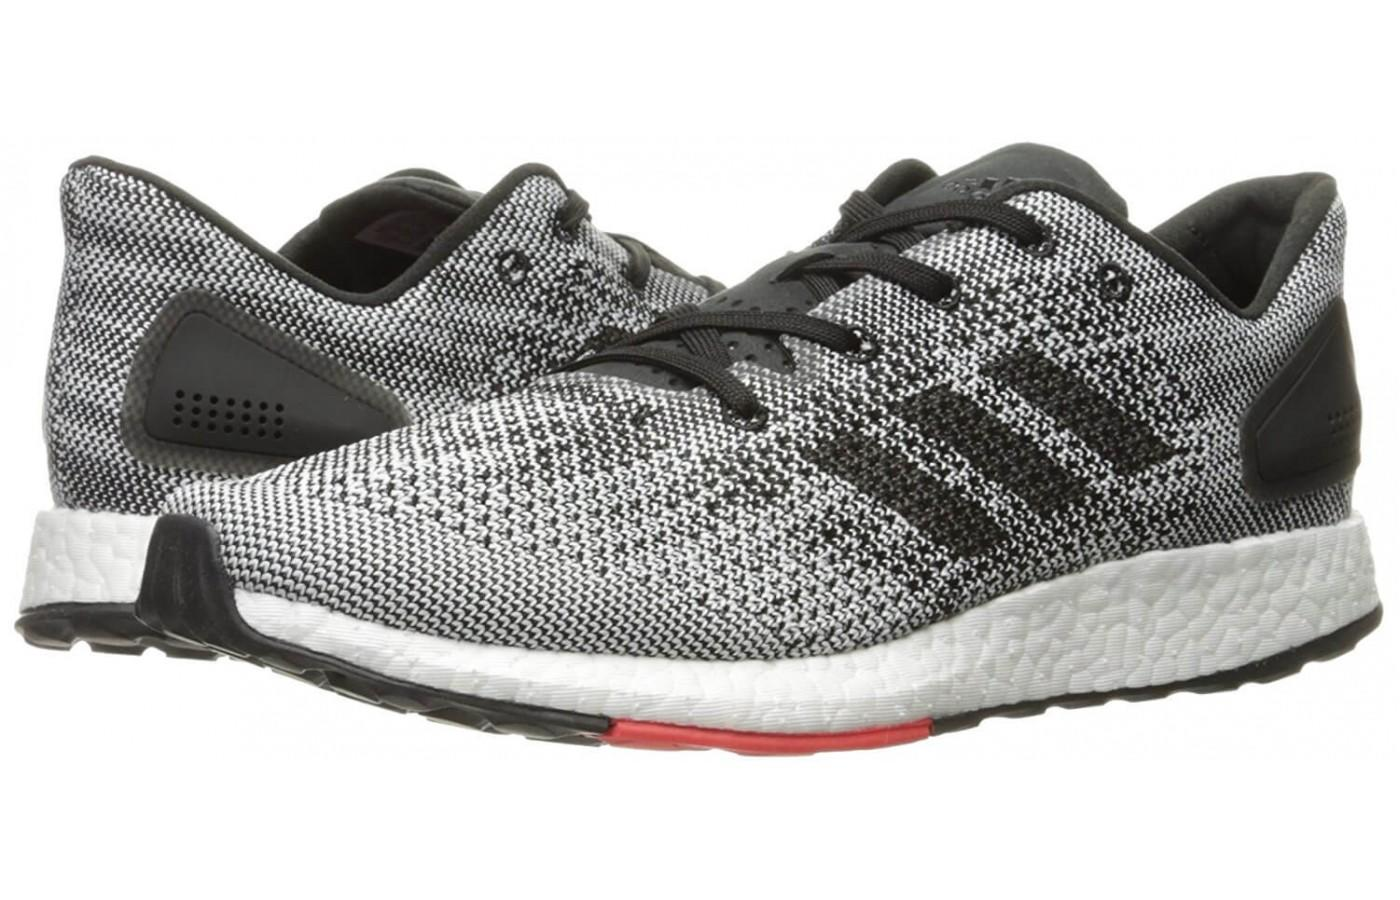 The Pureboost DPR is priced fairly for a unique high quality shoe